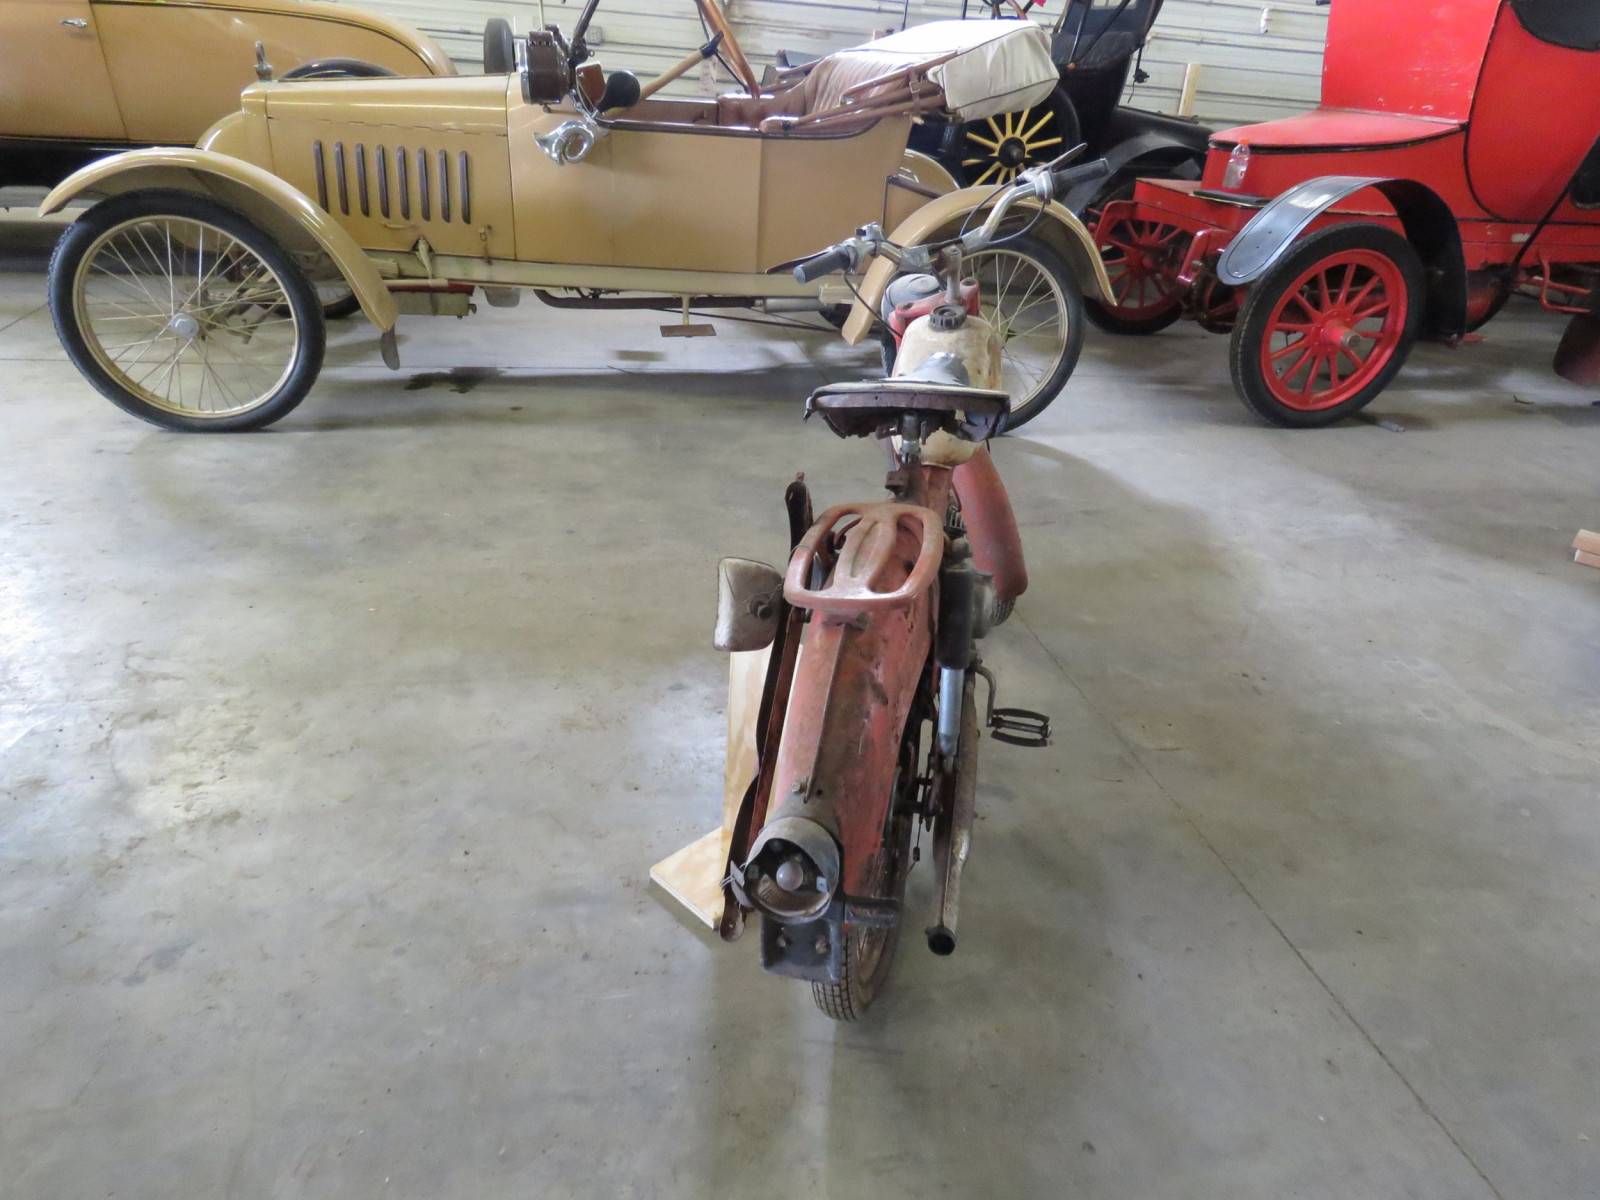 Vintage Wards Motorcycle Project - Image 3